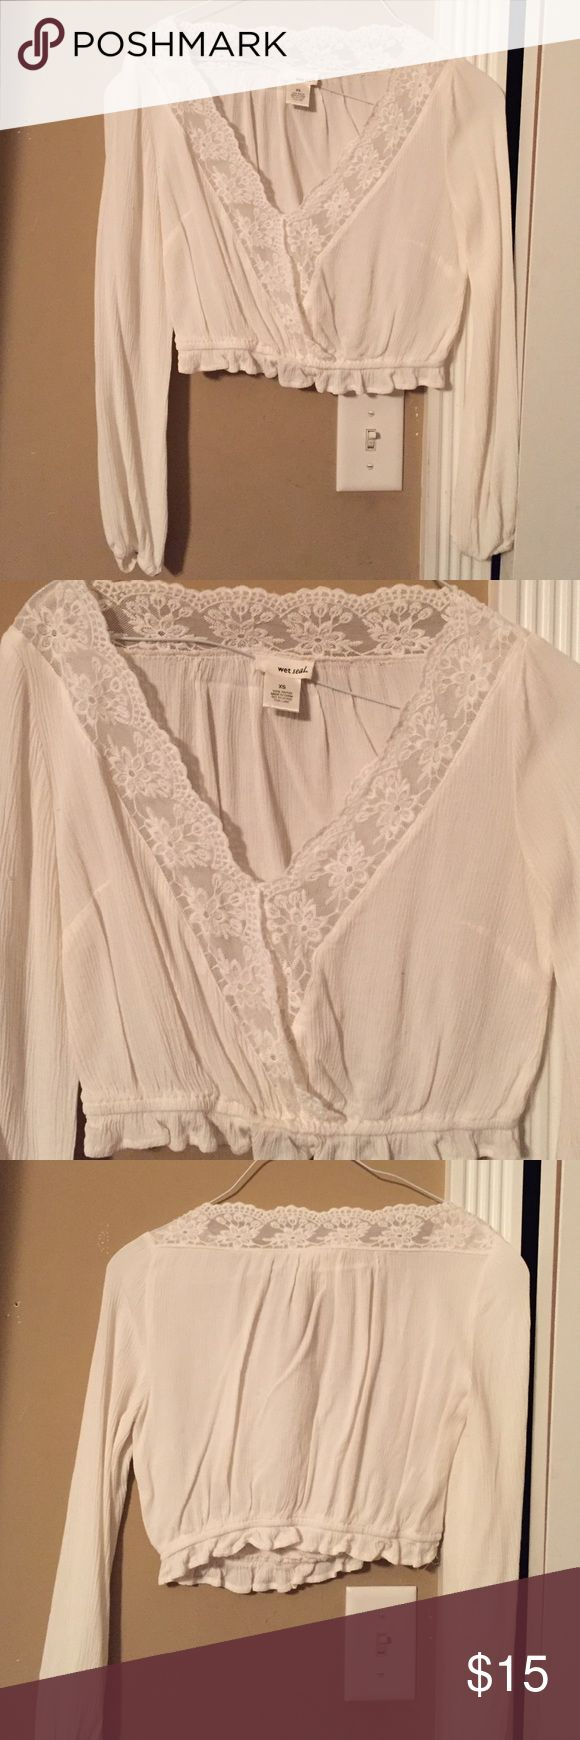 Cream colored wet seal crop top Cream colored wet seal crop top. Only worn once. Too small! Does not stretch! Wet Seal Tops Crop Tops